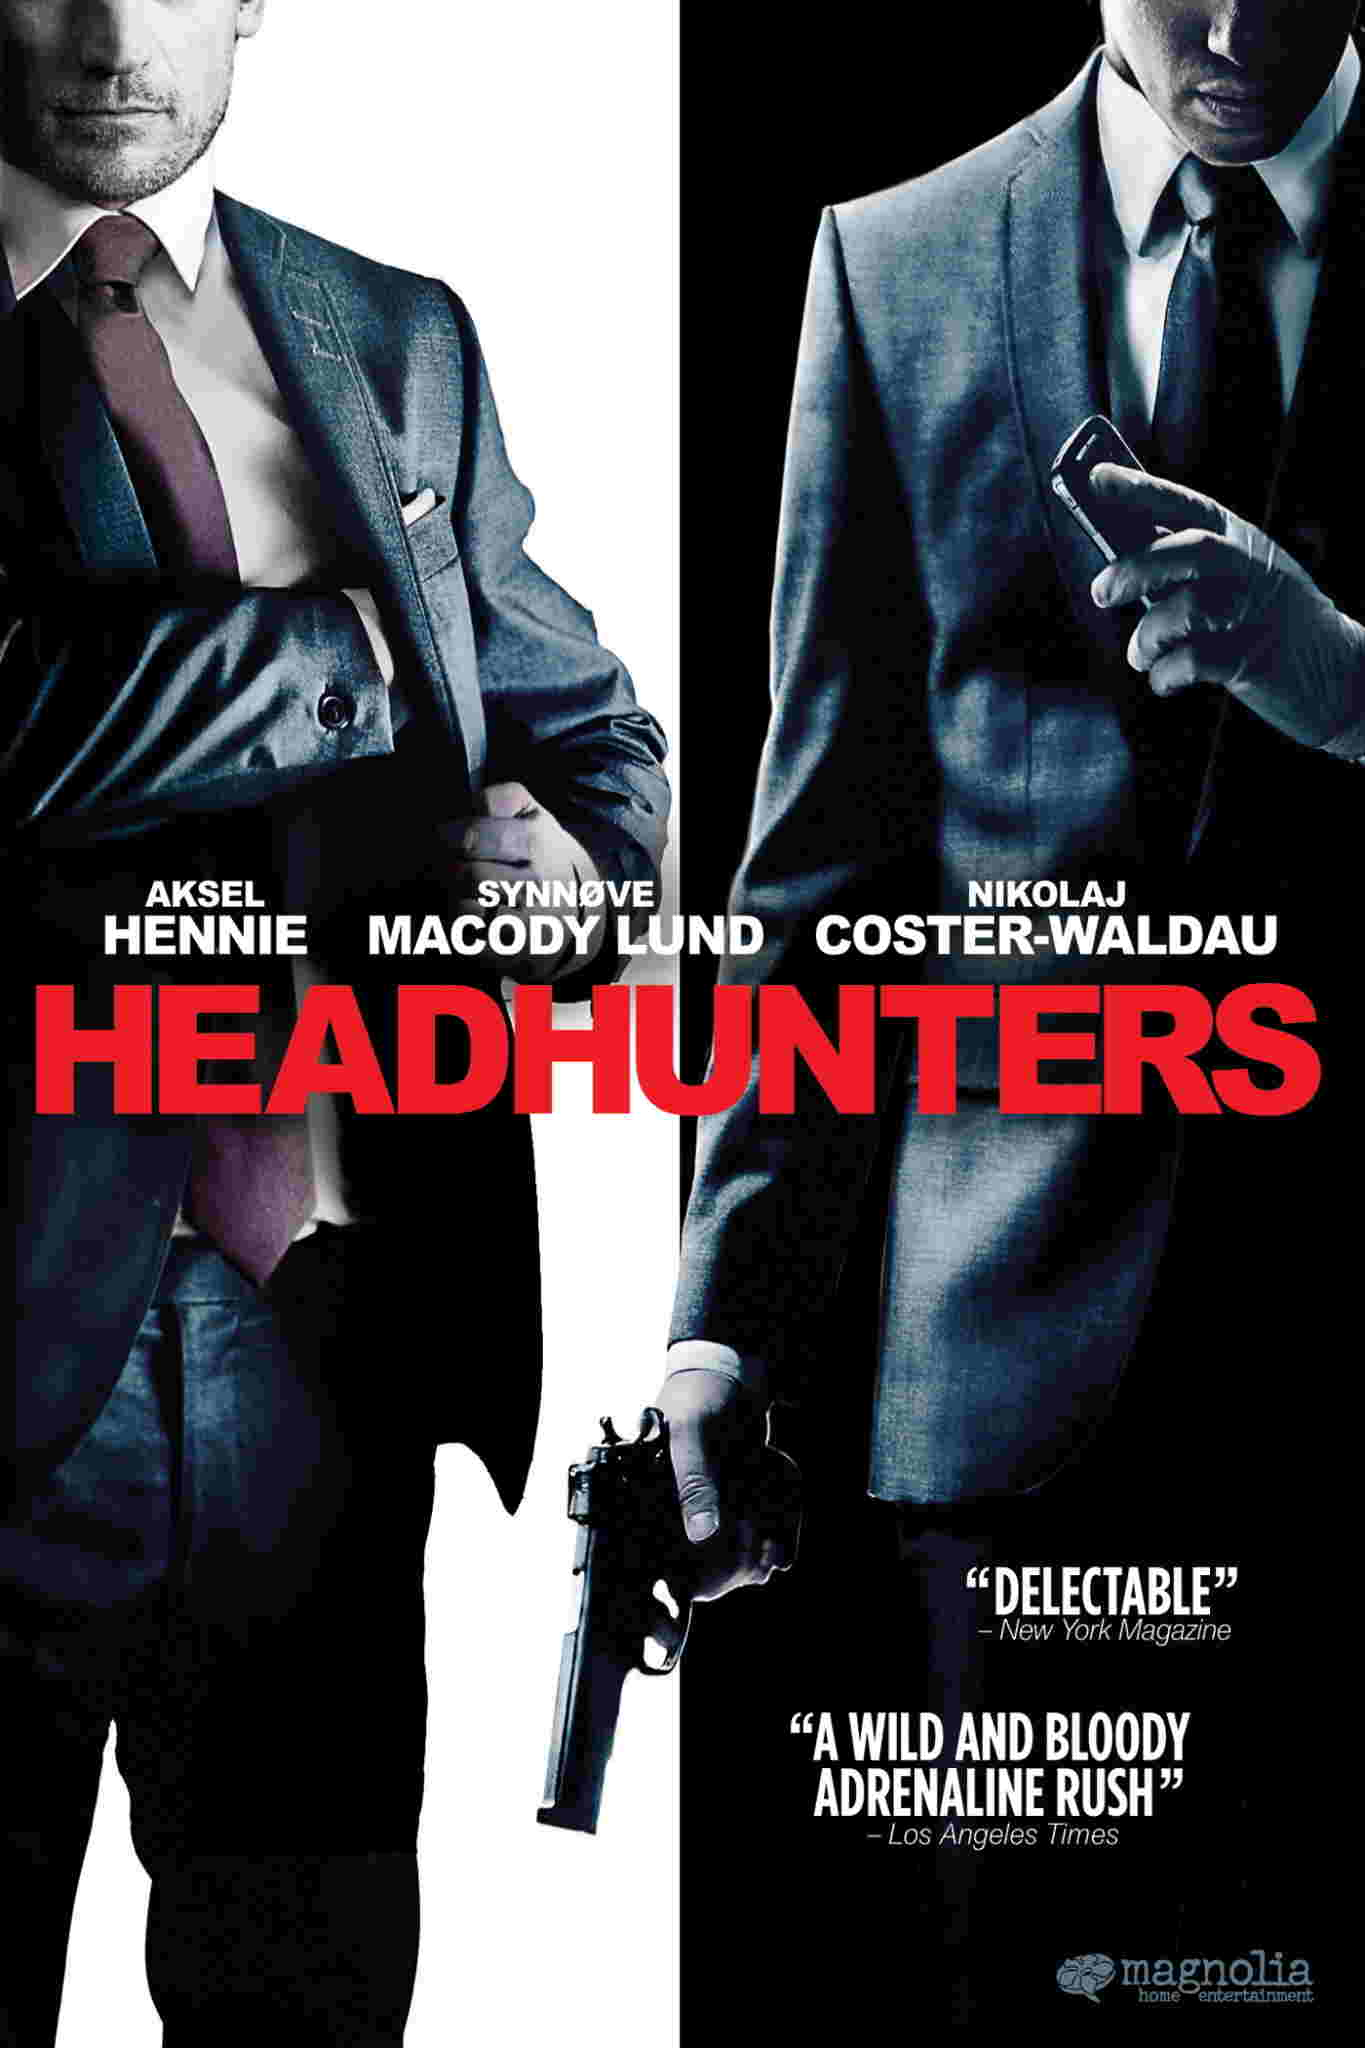 Headhunters Film